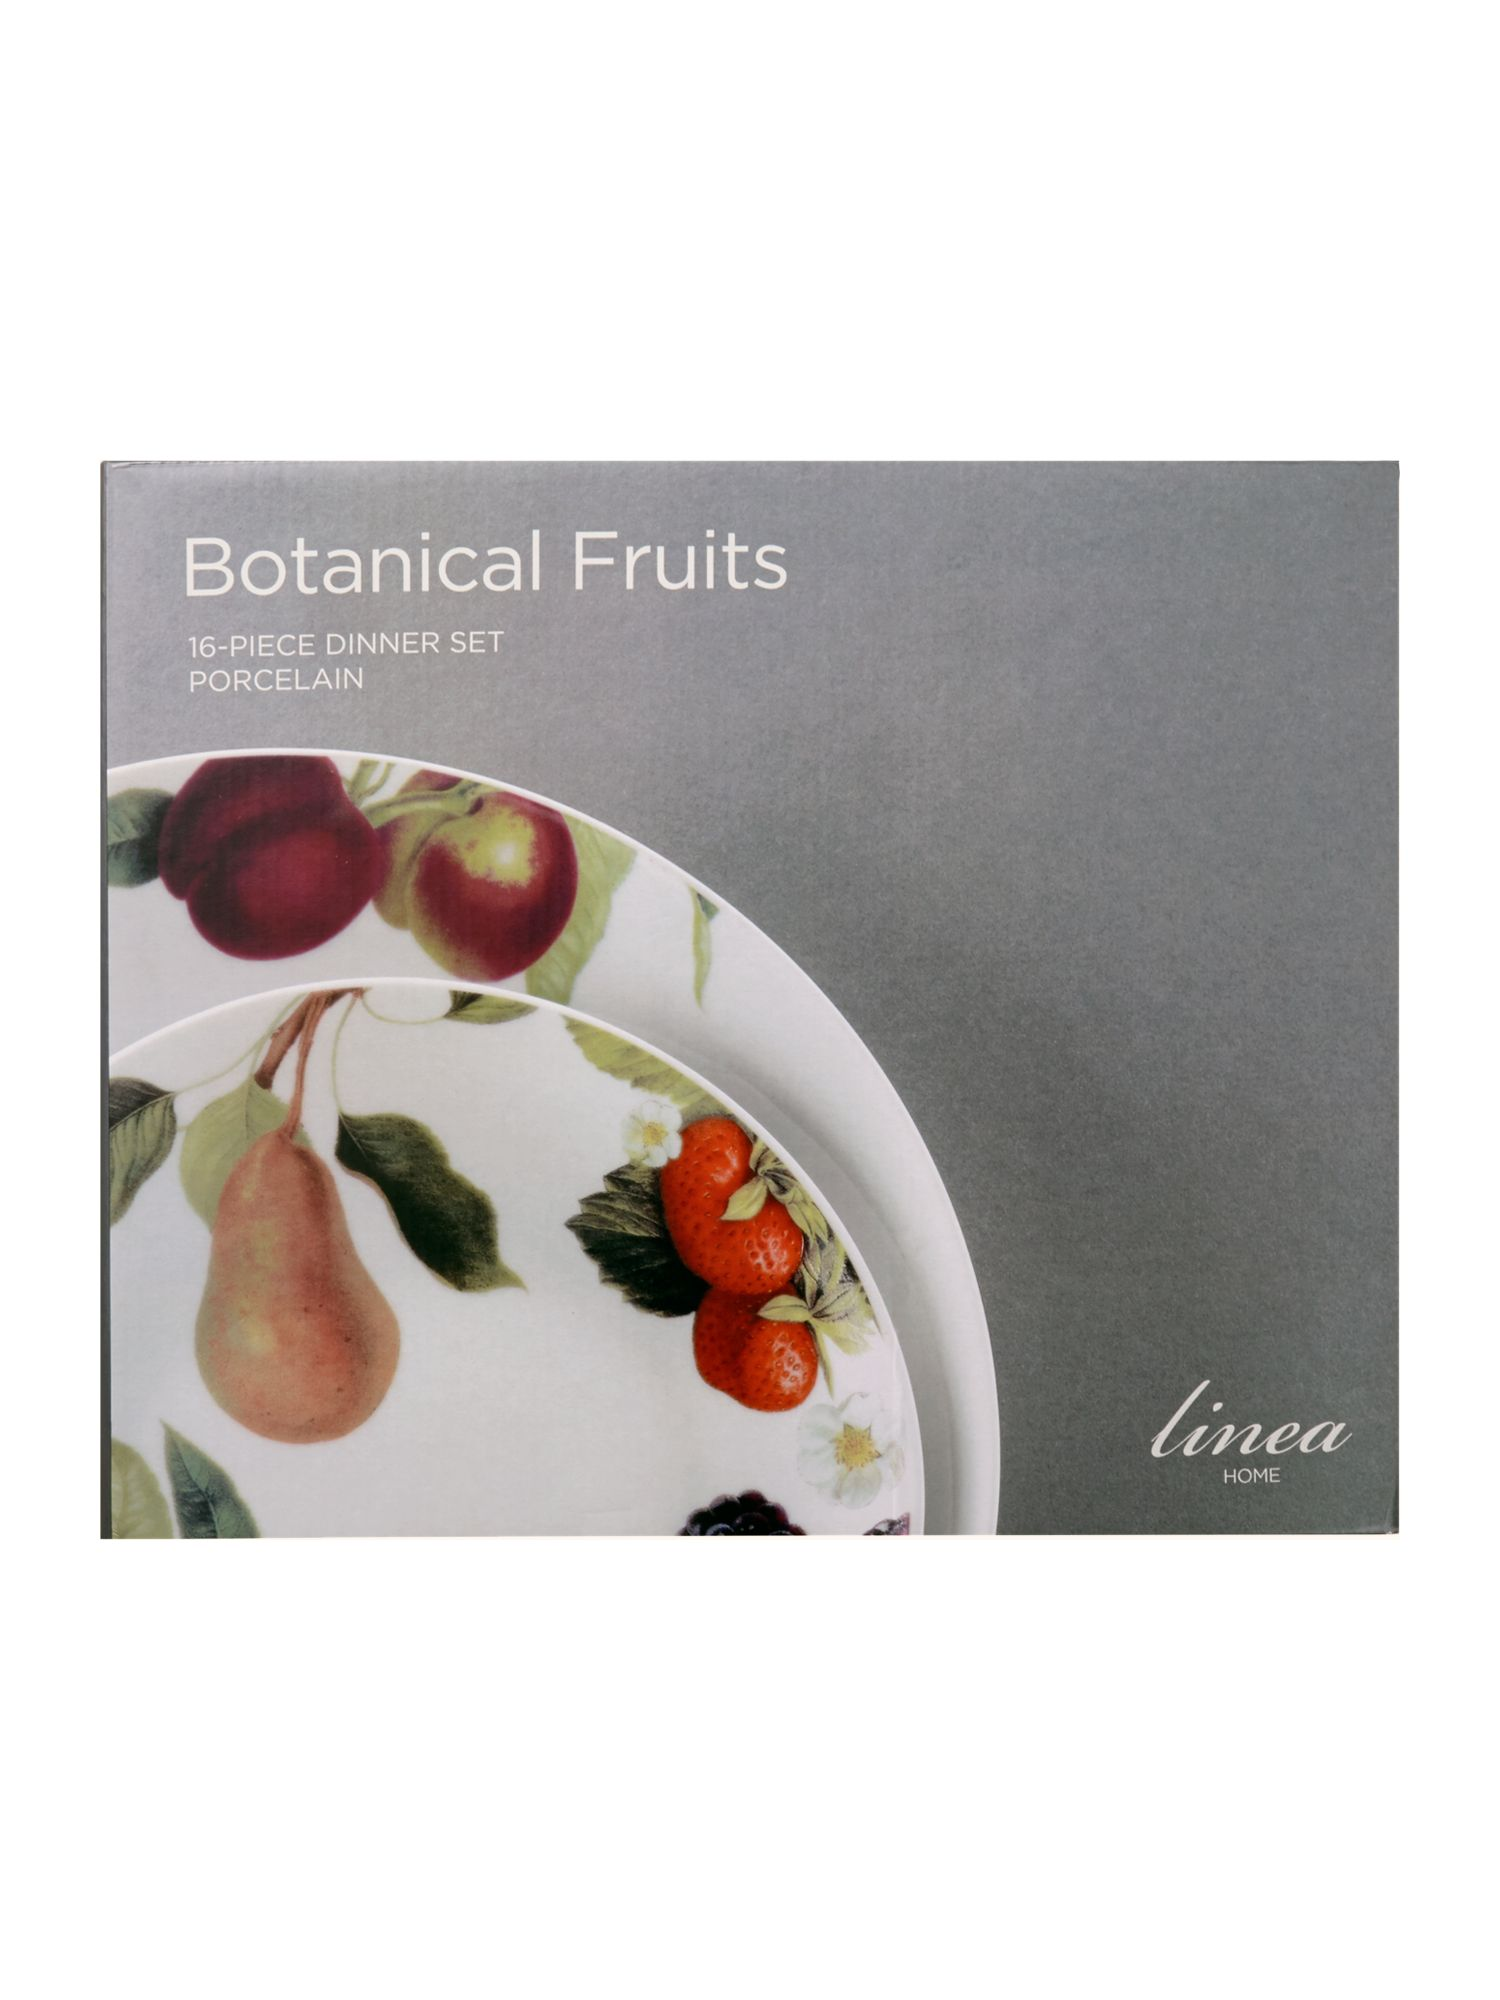 Botanical fruit 16pc box set